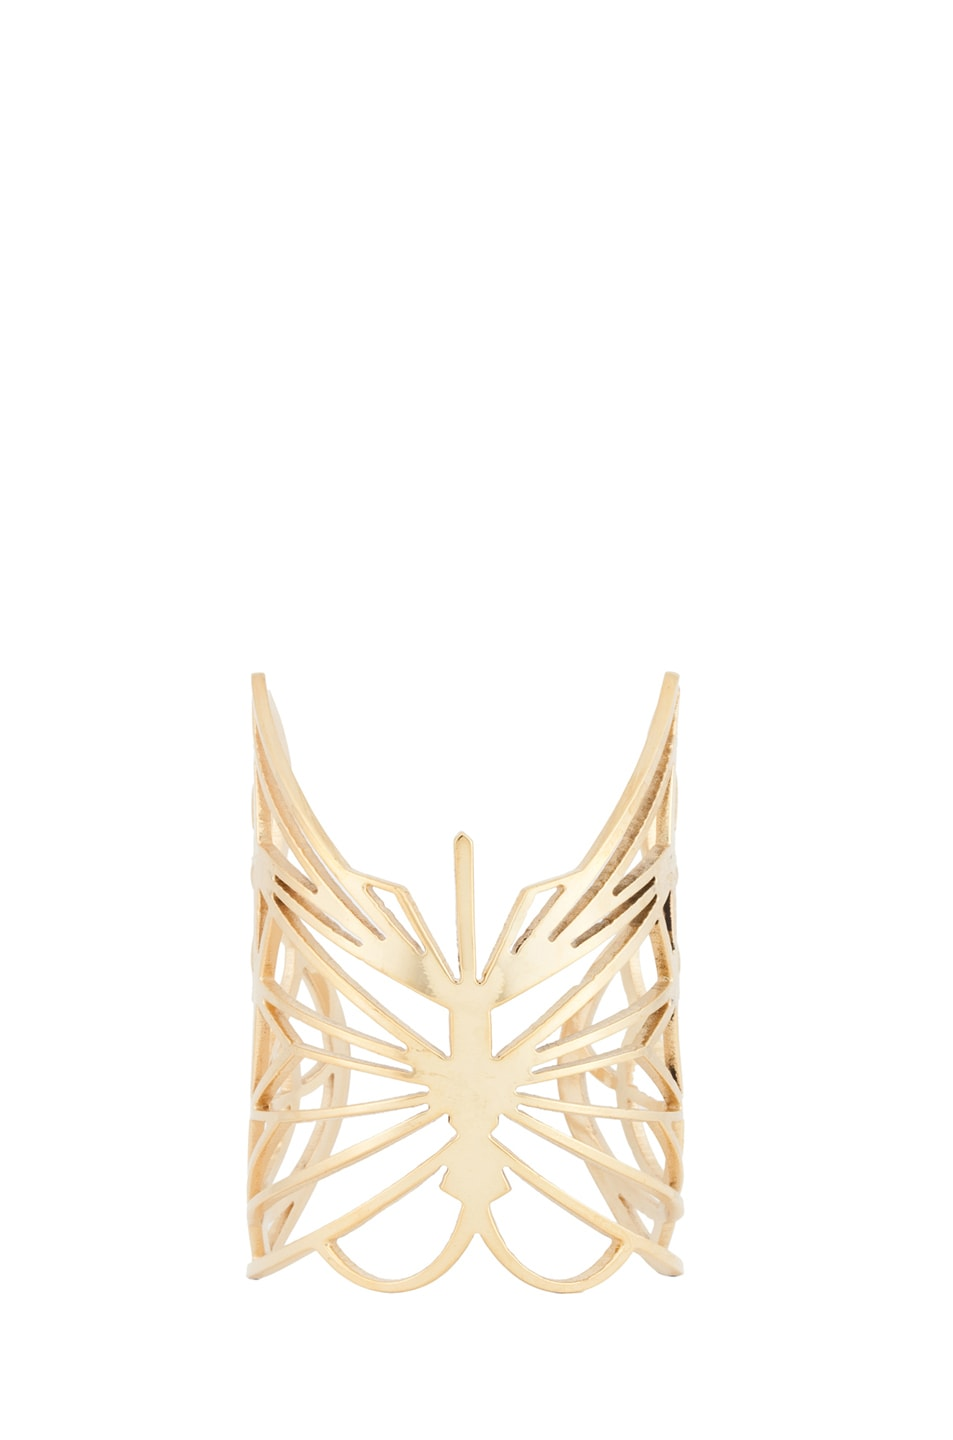 Image 1 of Kelly Wearstler Curiosity Butterfly Cuff in Gold Plated